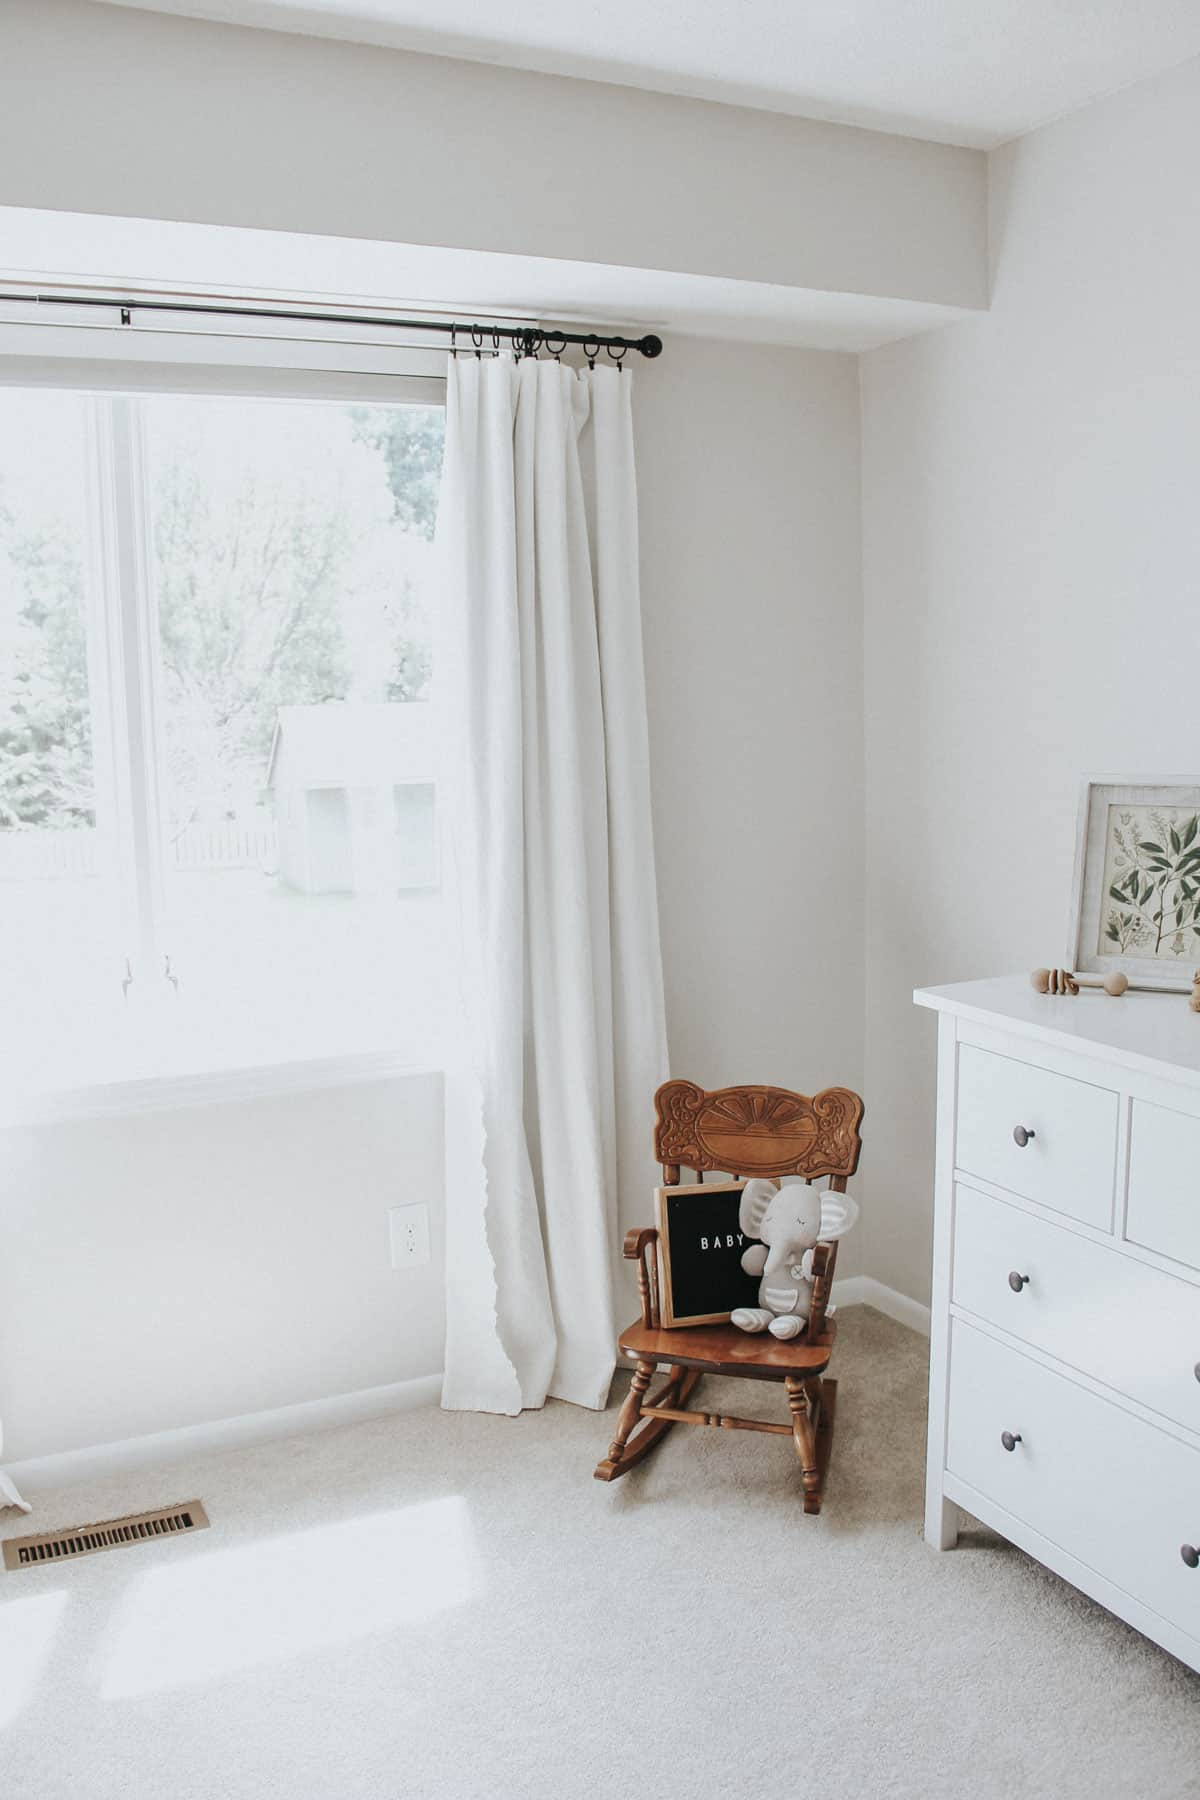 Bleached drop cloth curtains, rocking chair, and dresser in a neutral nursery.